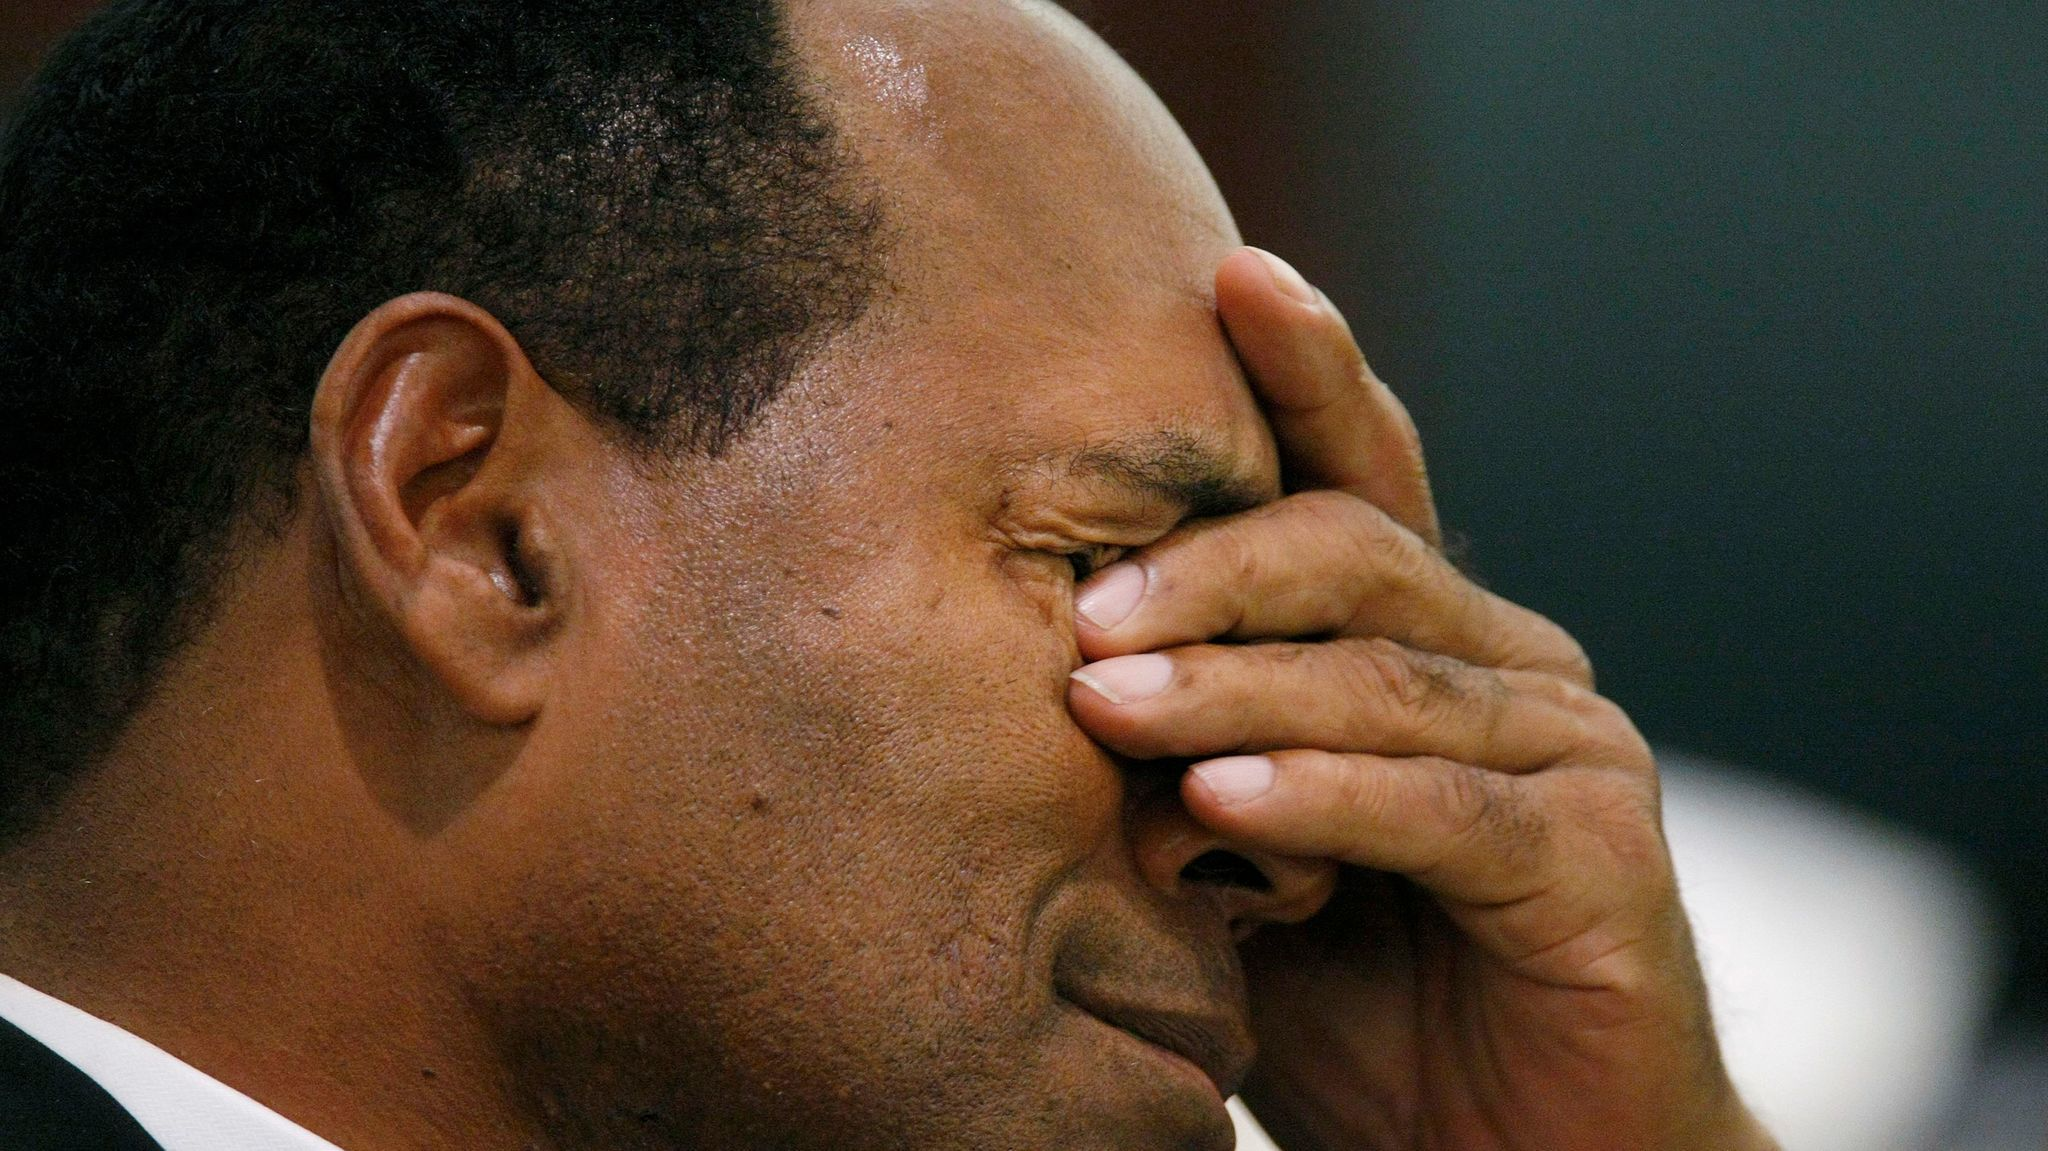 O.J. Simpson rubs his eyes in court during his robbery trial in Las Vegas.